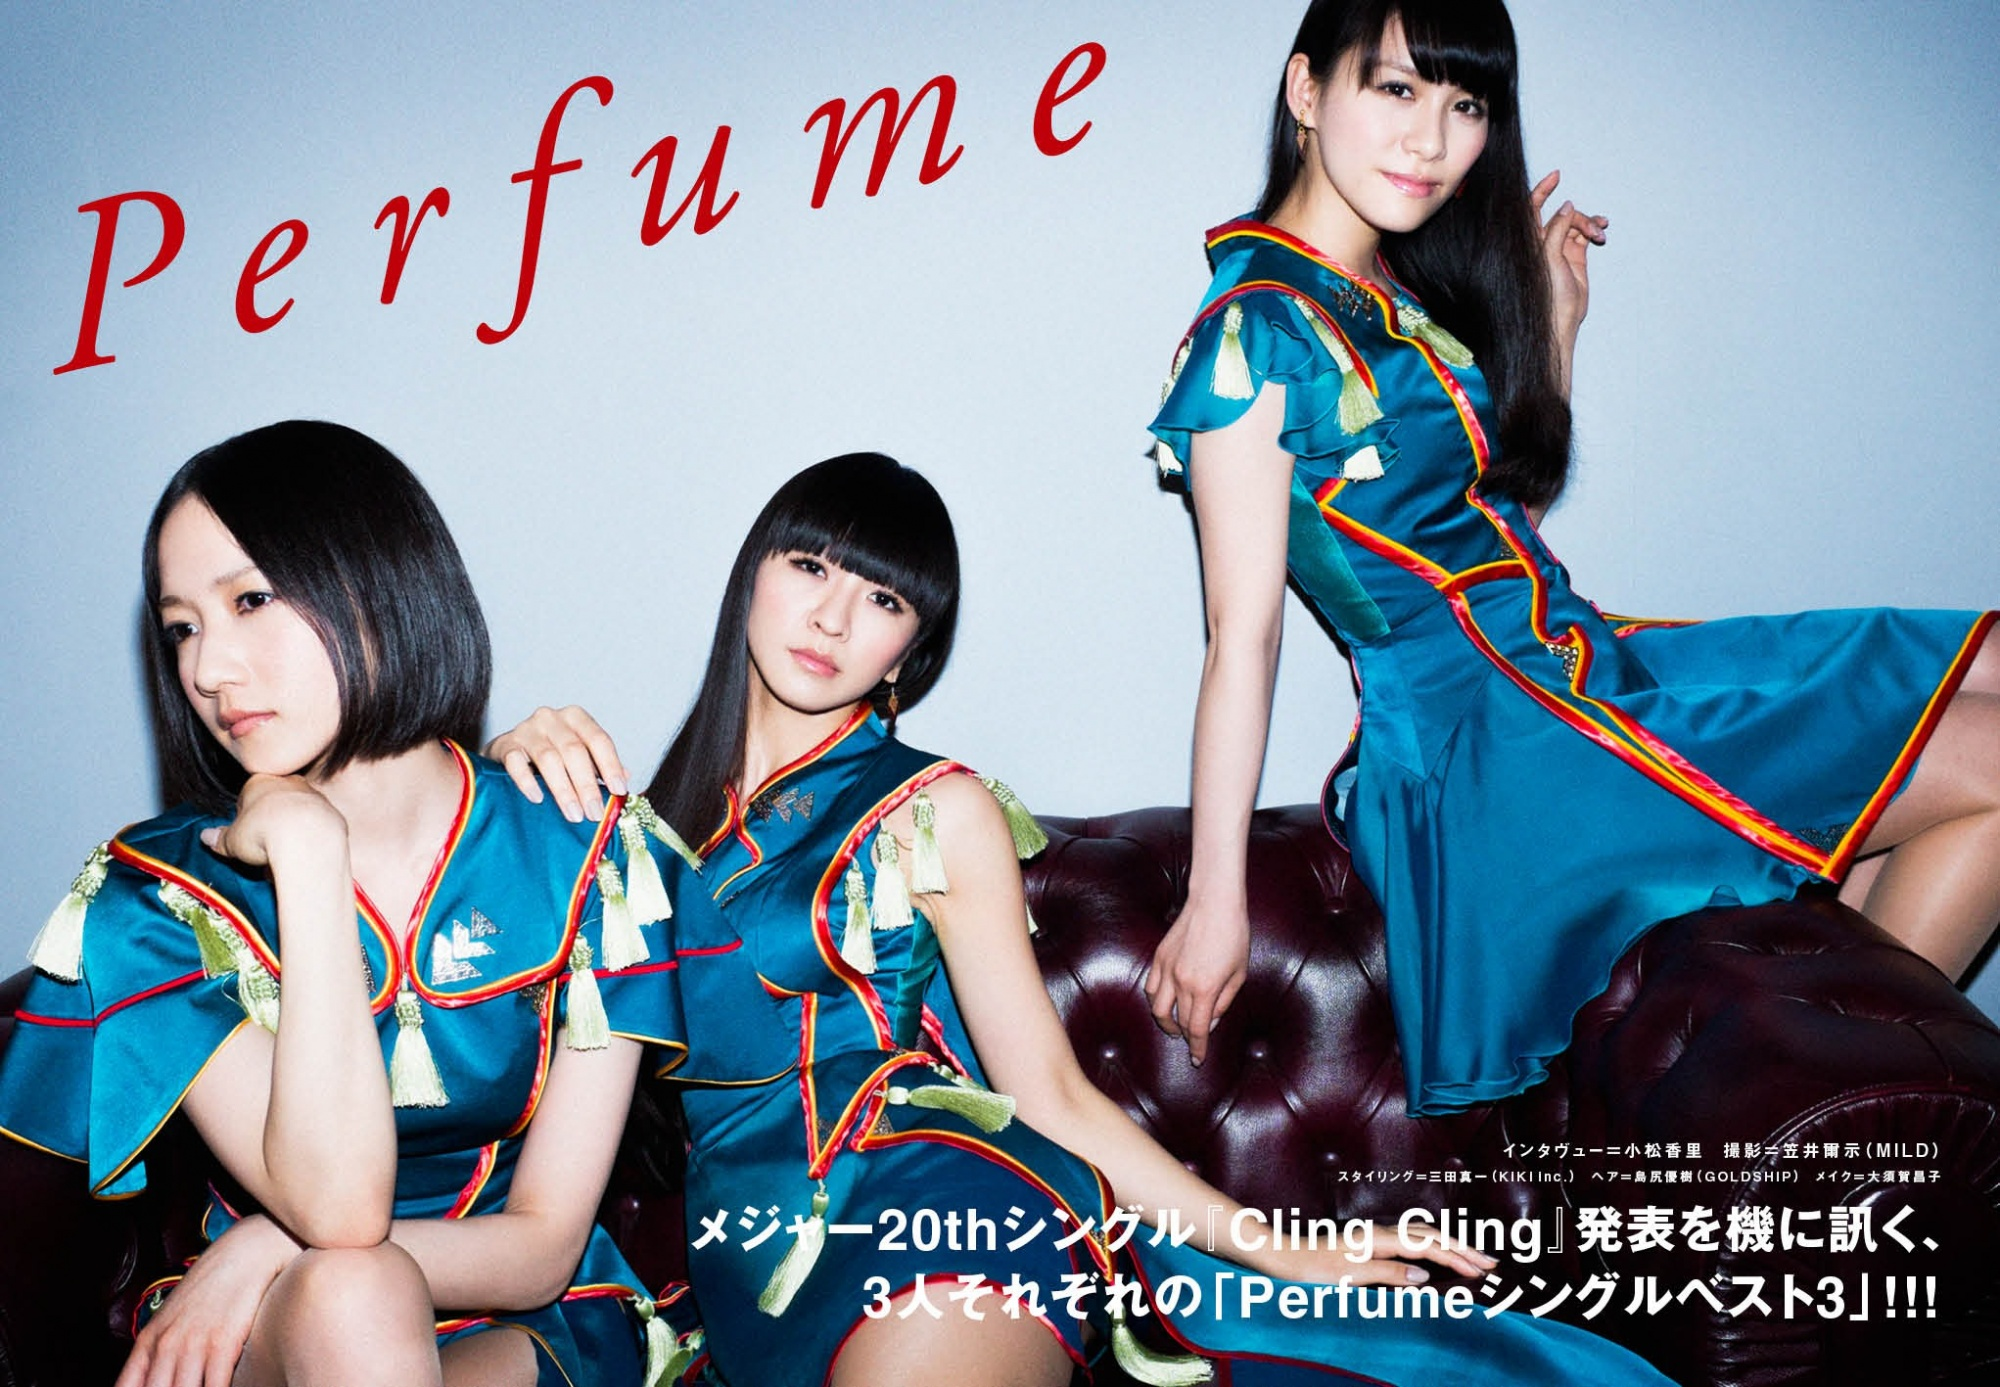 Perfume Group Wallpaper 33556 Asiachan Kpop Image Board